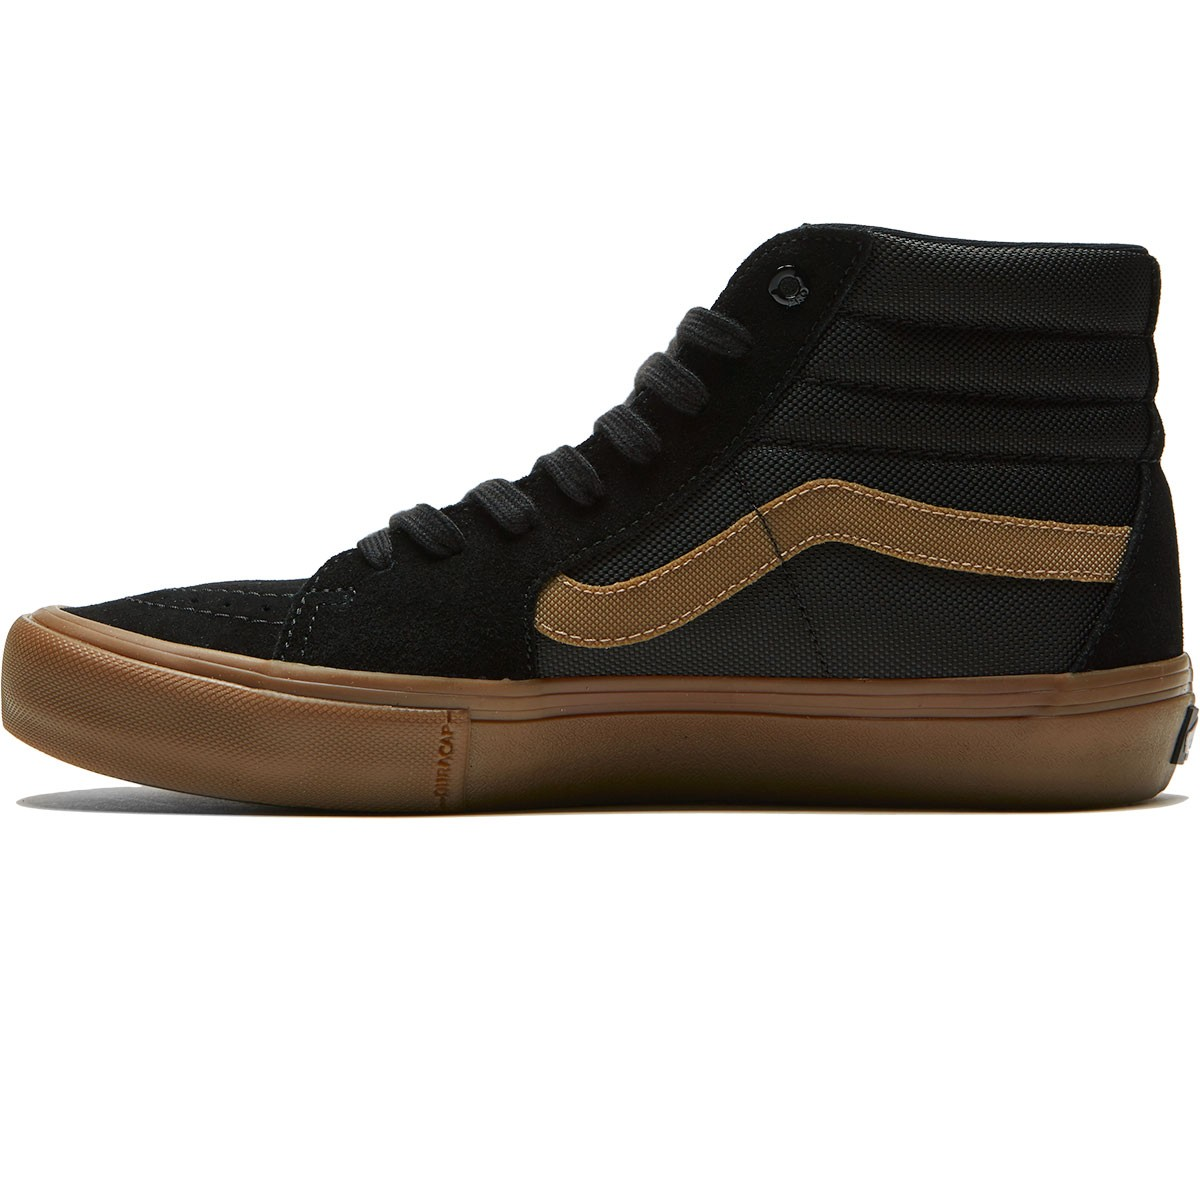 ff4fb11664b1 Vans X Thrasher Sk8 Hi Pro Shoes - Thrasher Black Gum - 6.5